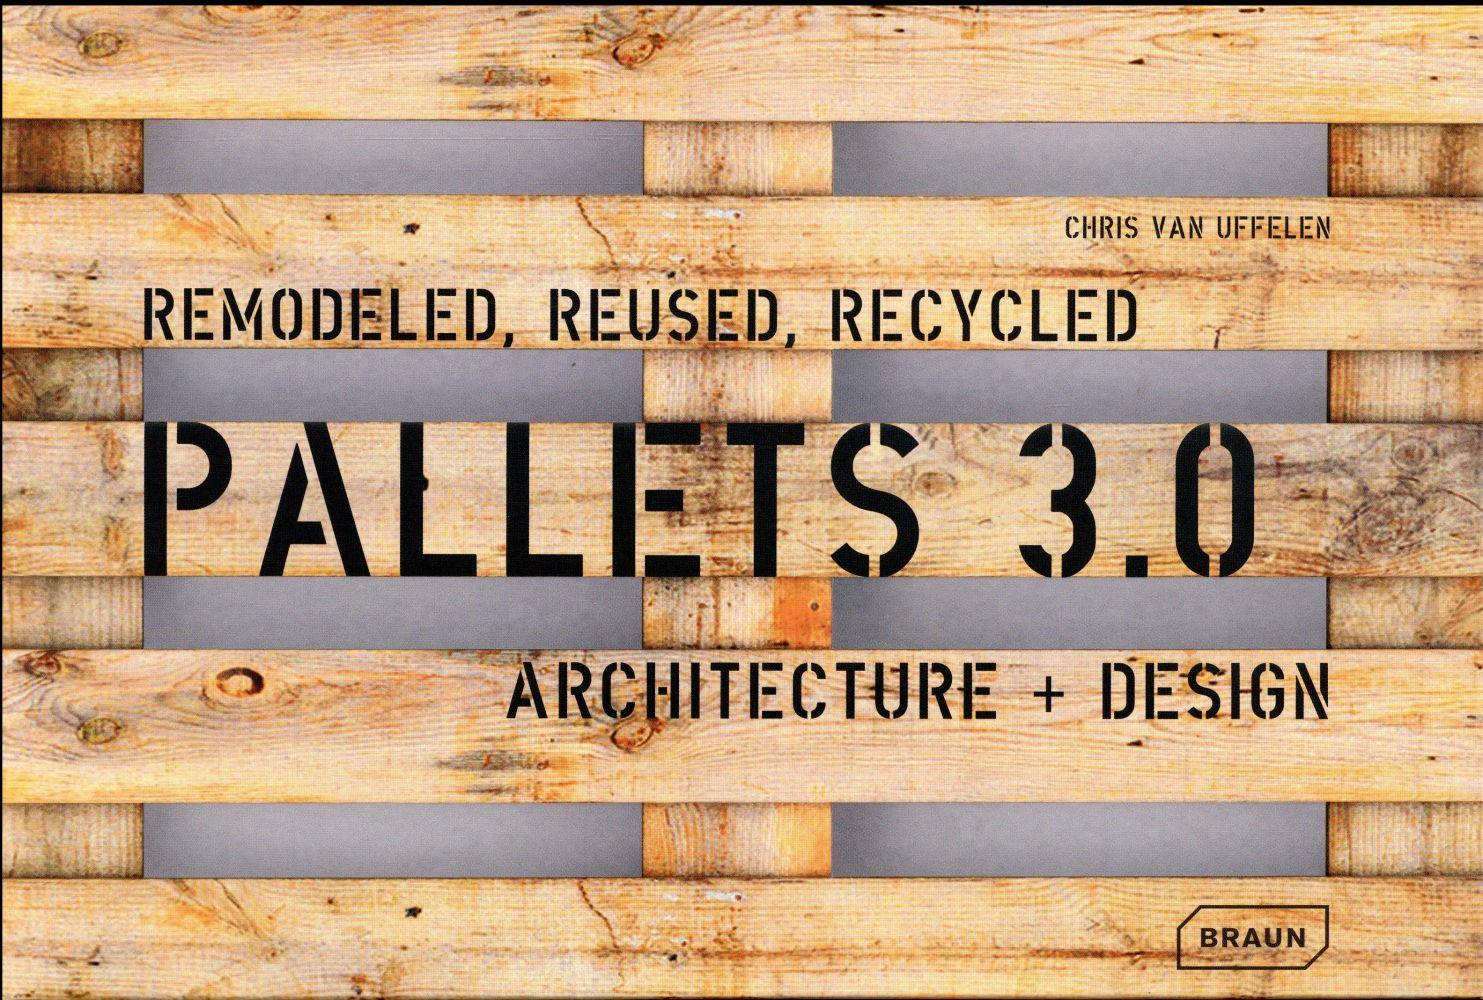 Pallets 3.0. ; remodeled, reused, recycled ; architecture + design  - Chris Van Uffelen